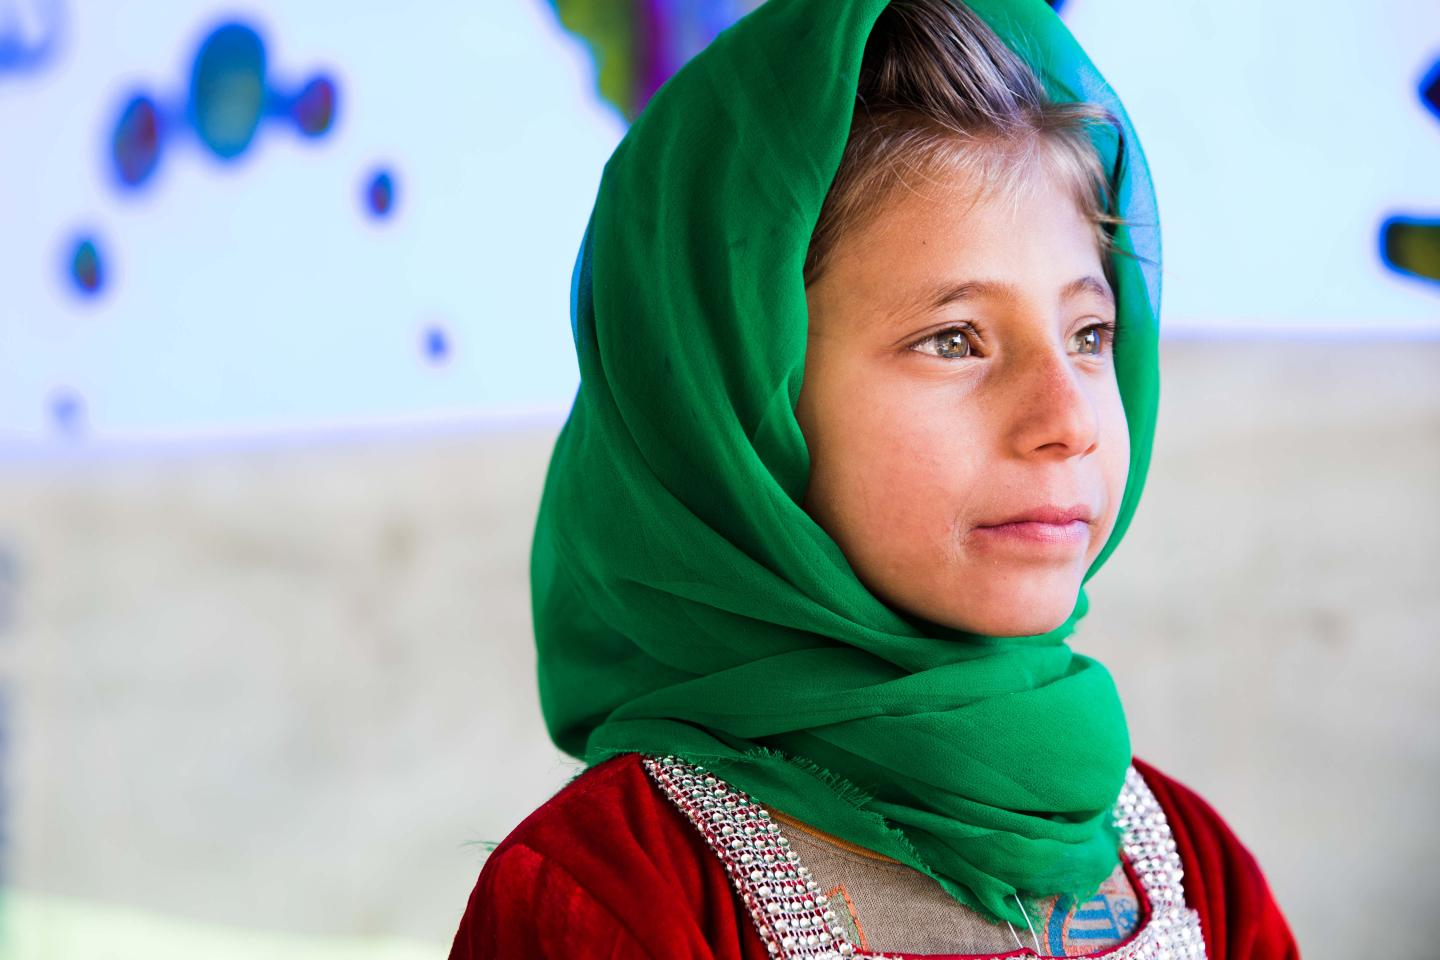 A young girl on World Children's Day in Kabul, Afghanistan.